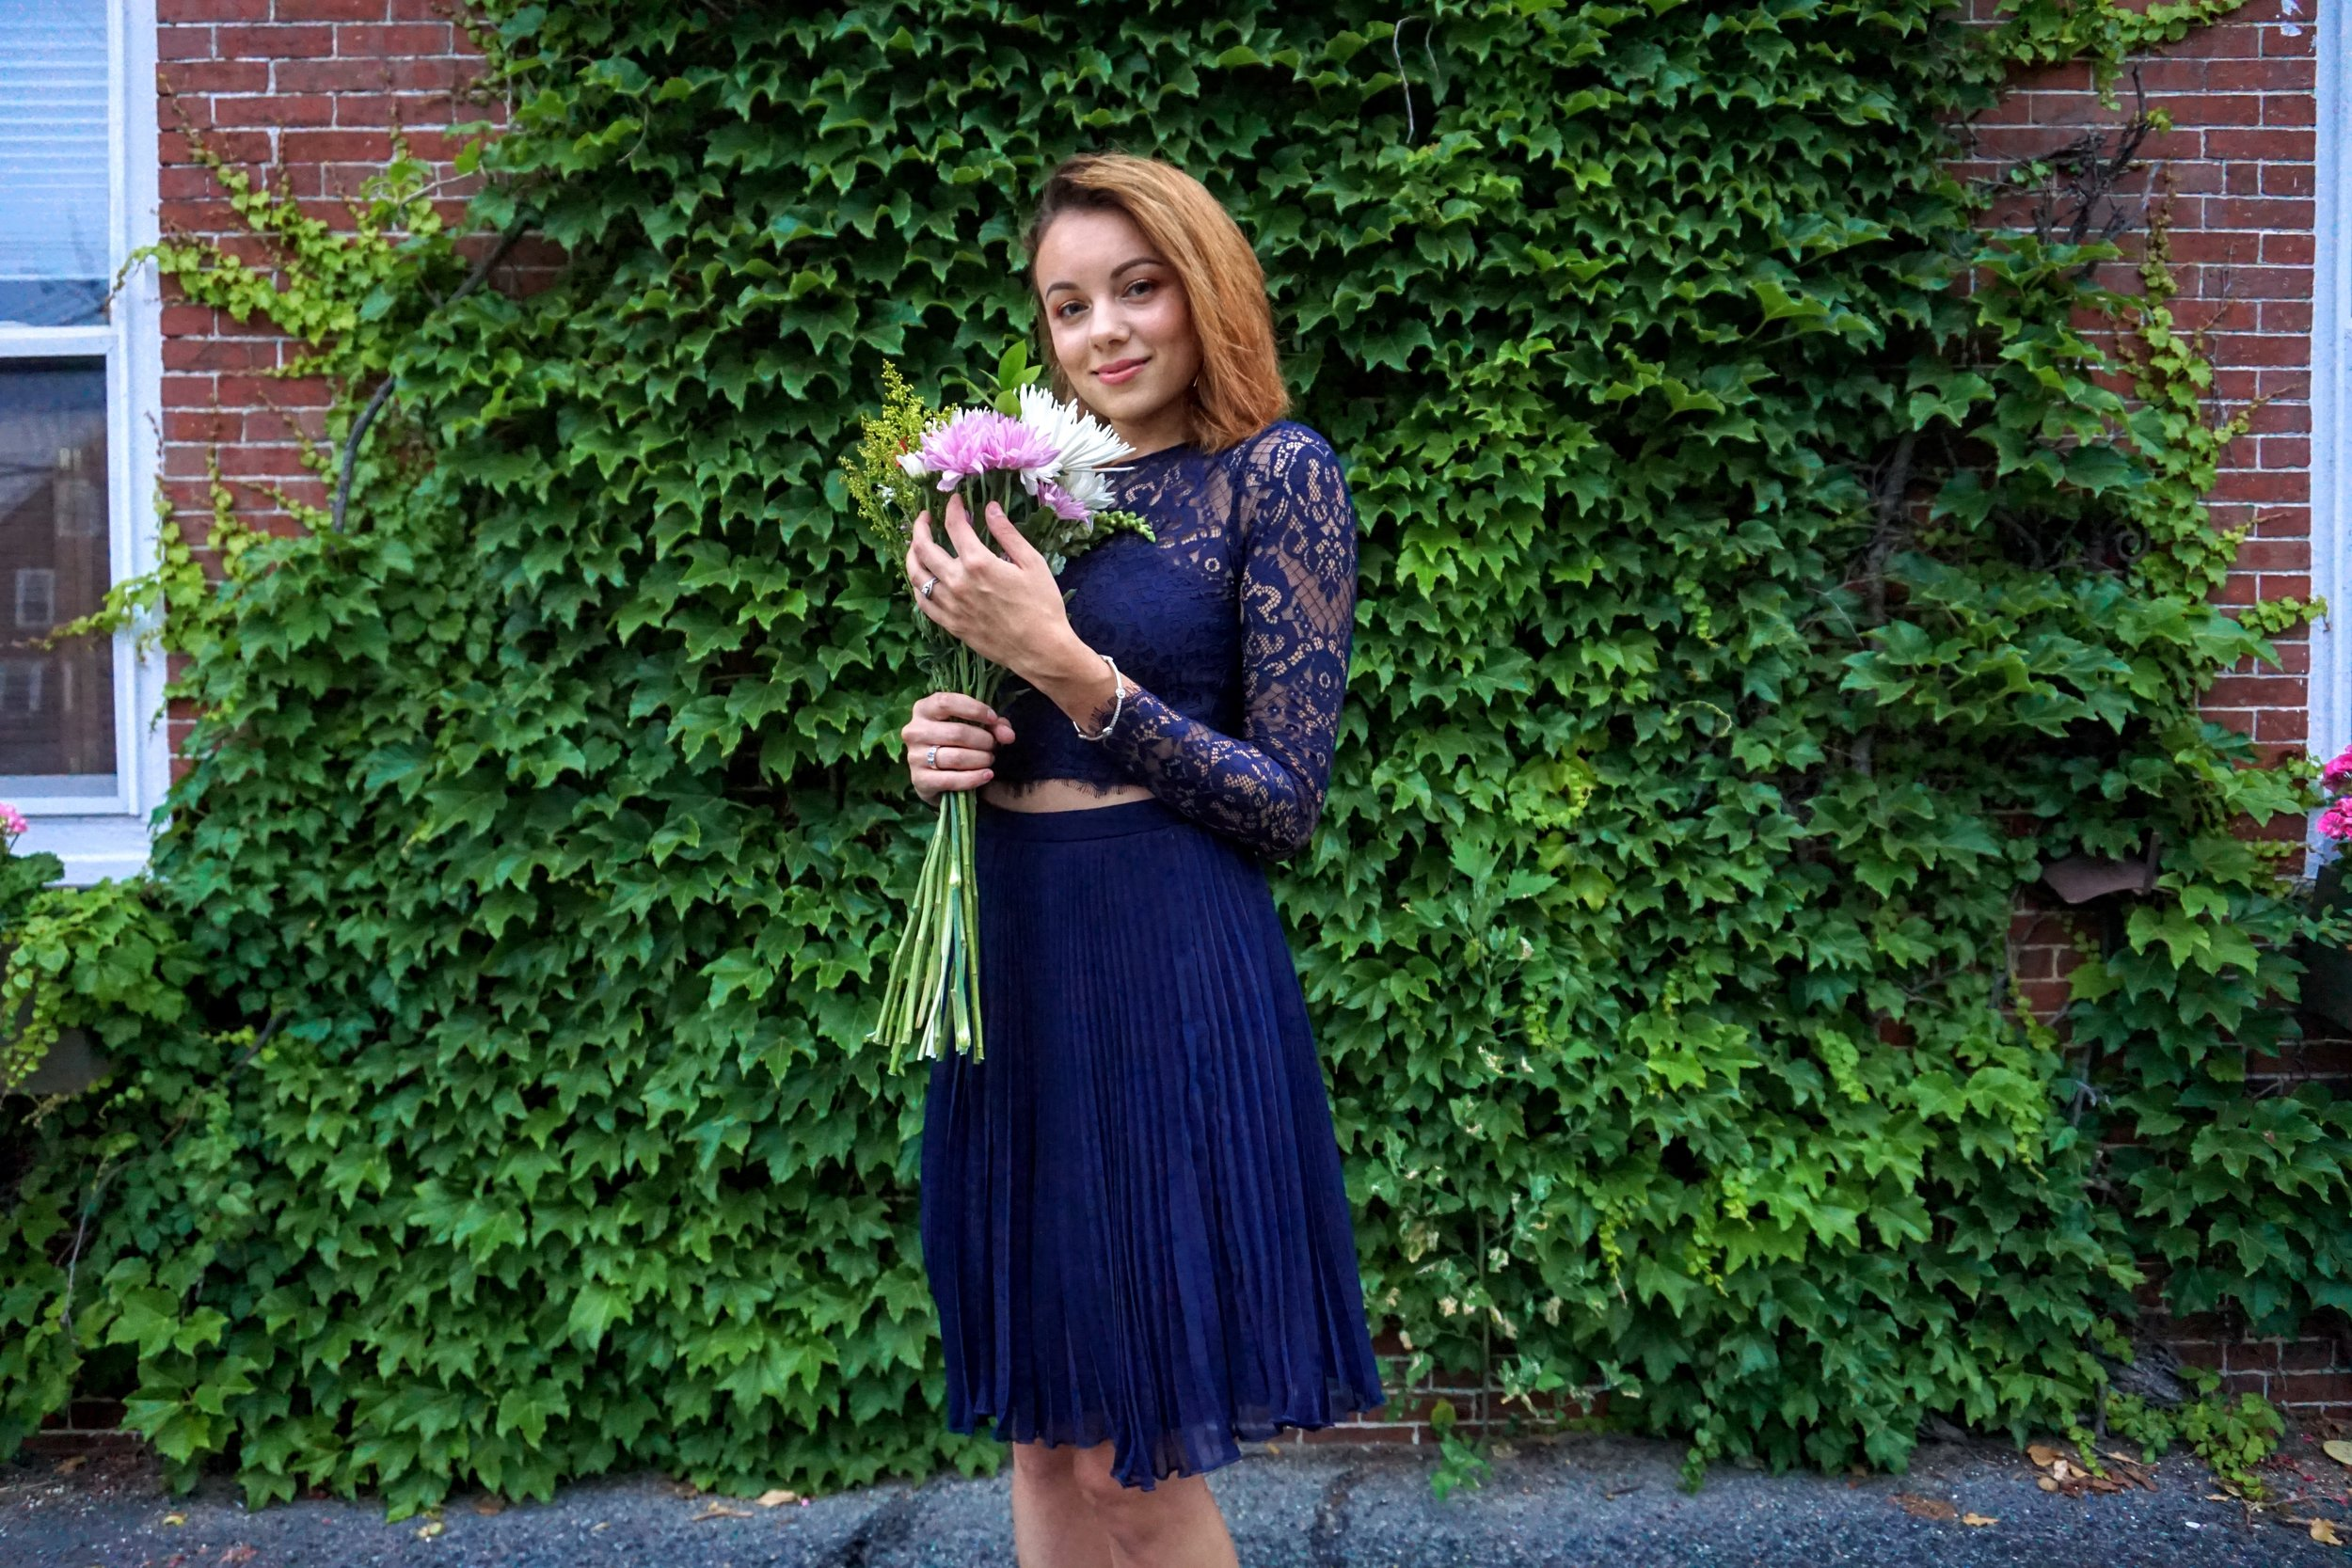 A photo of a girl holding flowers and wearing a dress set of lace crop top and a skirt.